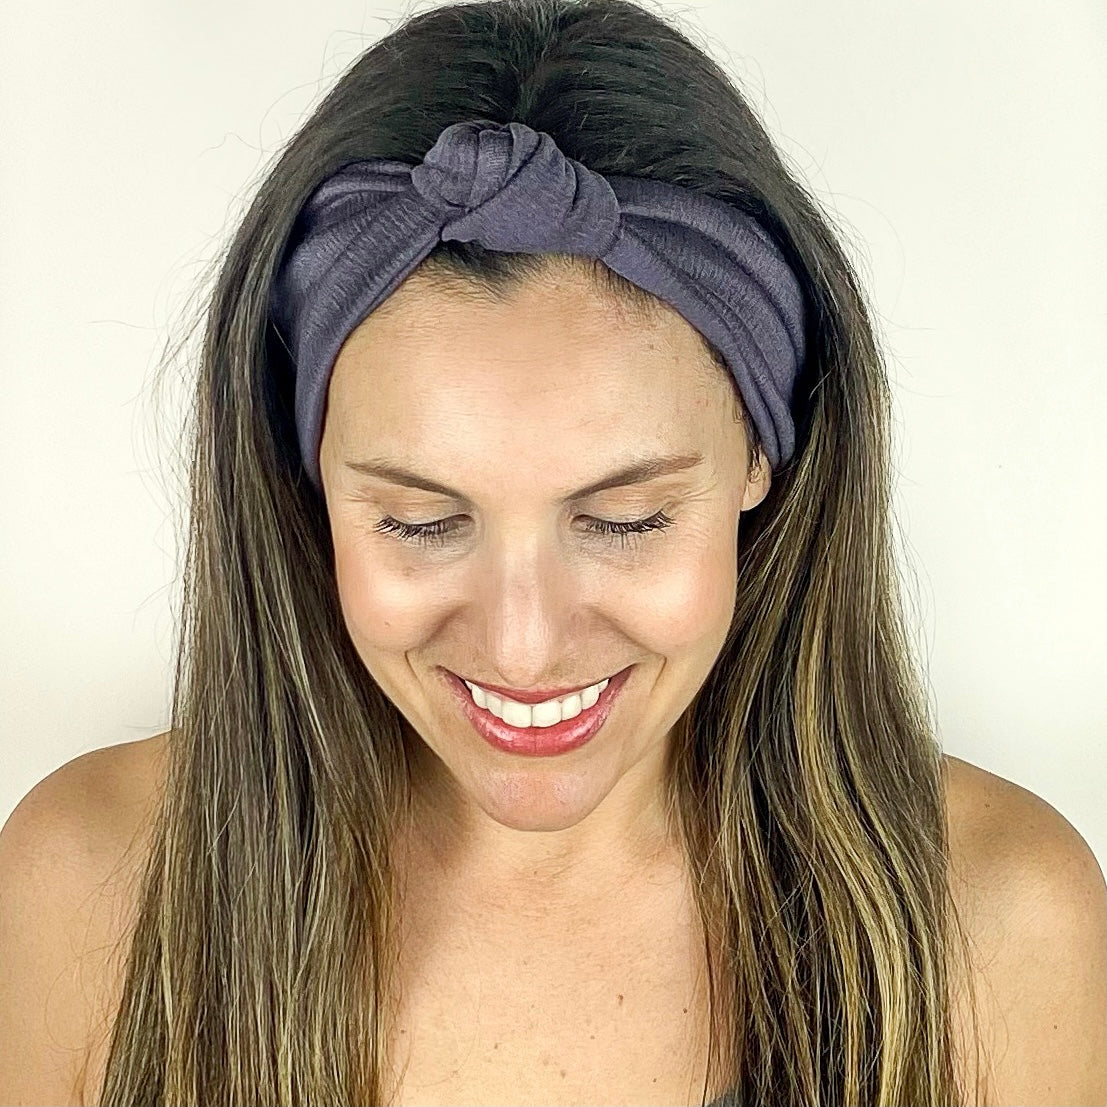 Rouged Raisin Headband